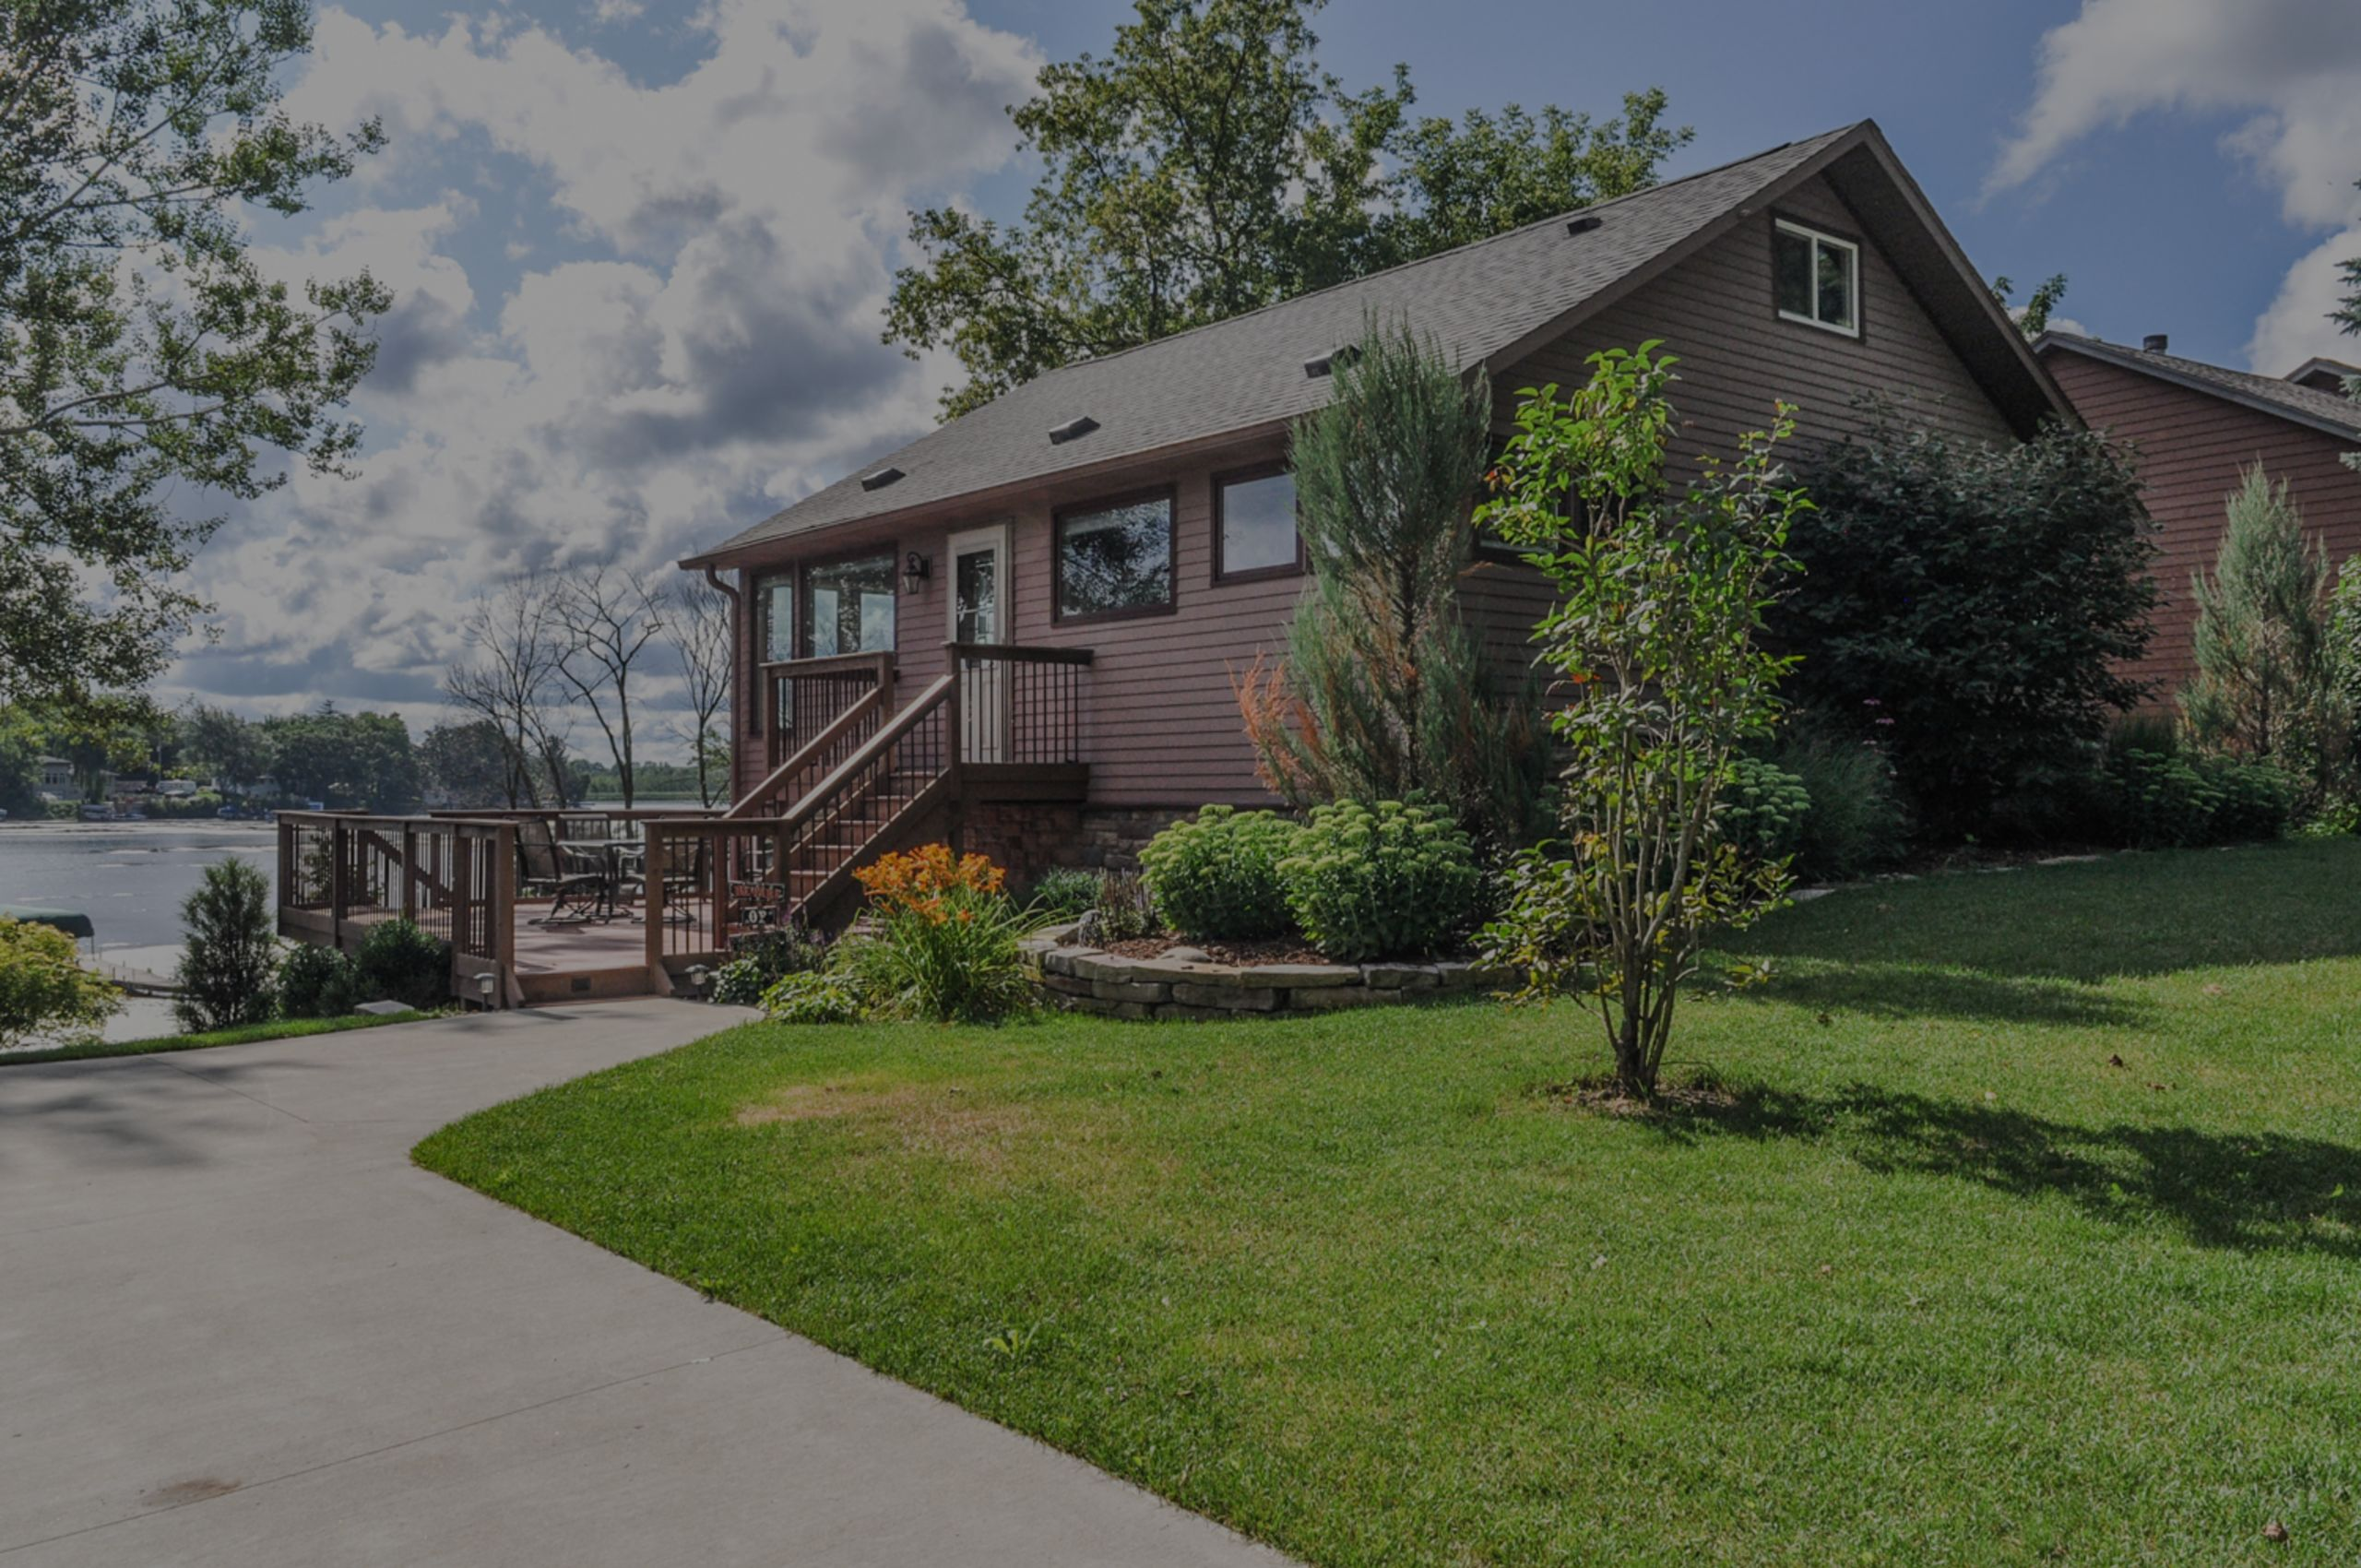 5601 Scenery Dr, Waterford, WI 53185